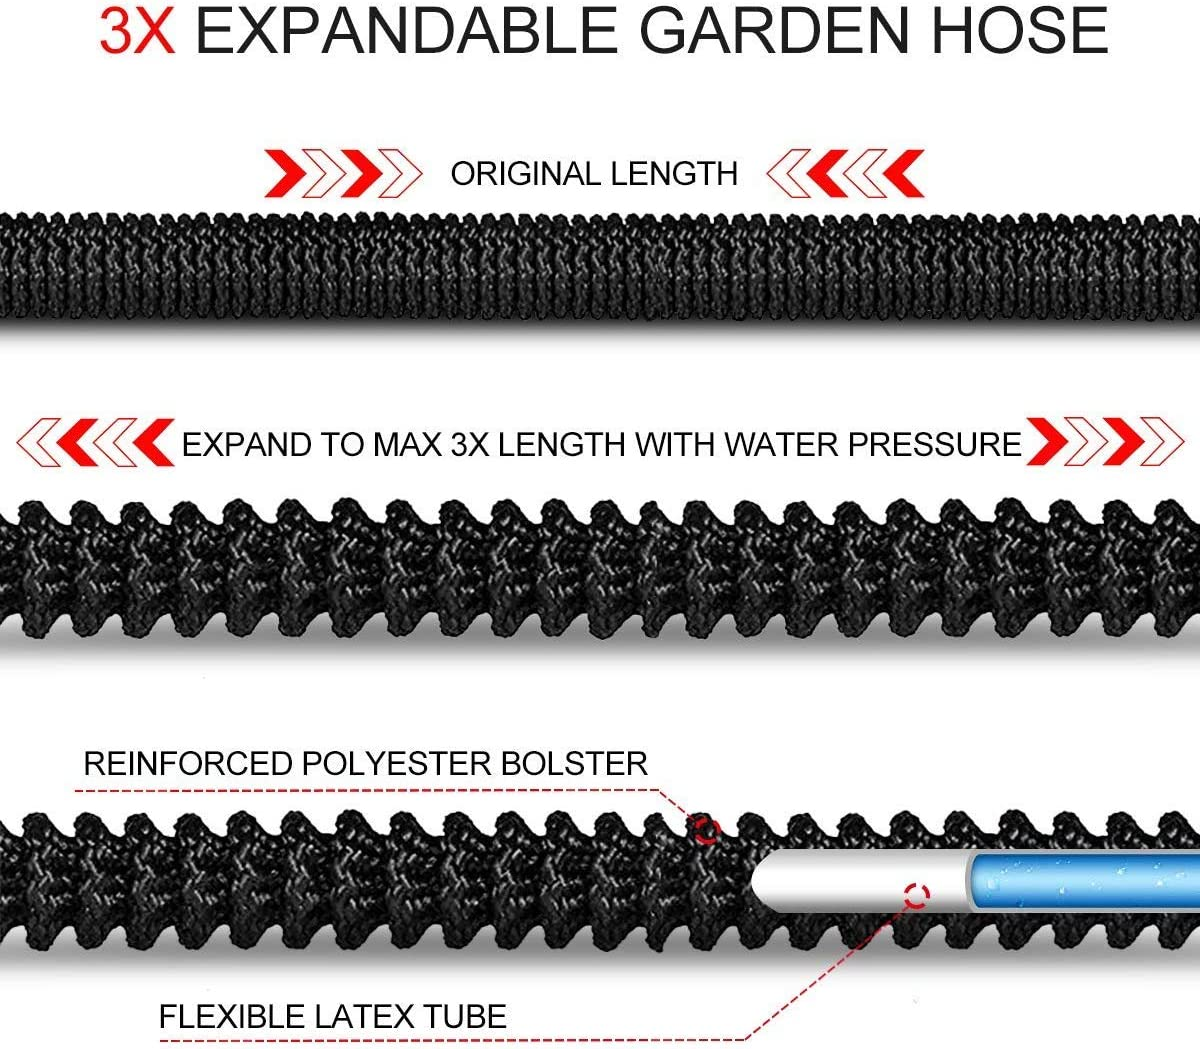 with Spray Nozzle and Storage Bag 3//4 Solid Brass Fittings Flexible Water Hose with Triple Layered Latex Core Upgraded Leakproof Lightweight No-Kink Water Hose 50 Foot Expandable Garden Hose